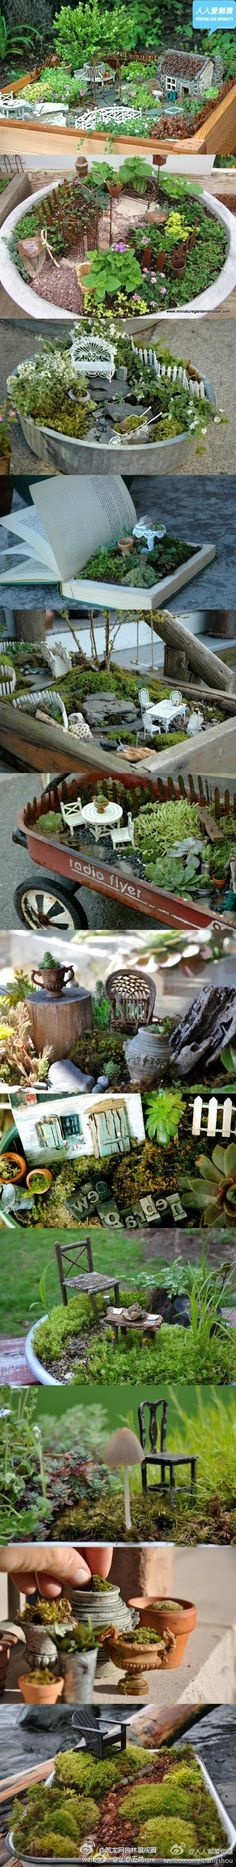 This is our next summer fun thing to do...building a Fairy Garden! Kids will LOVE!